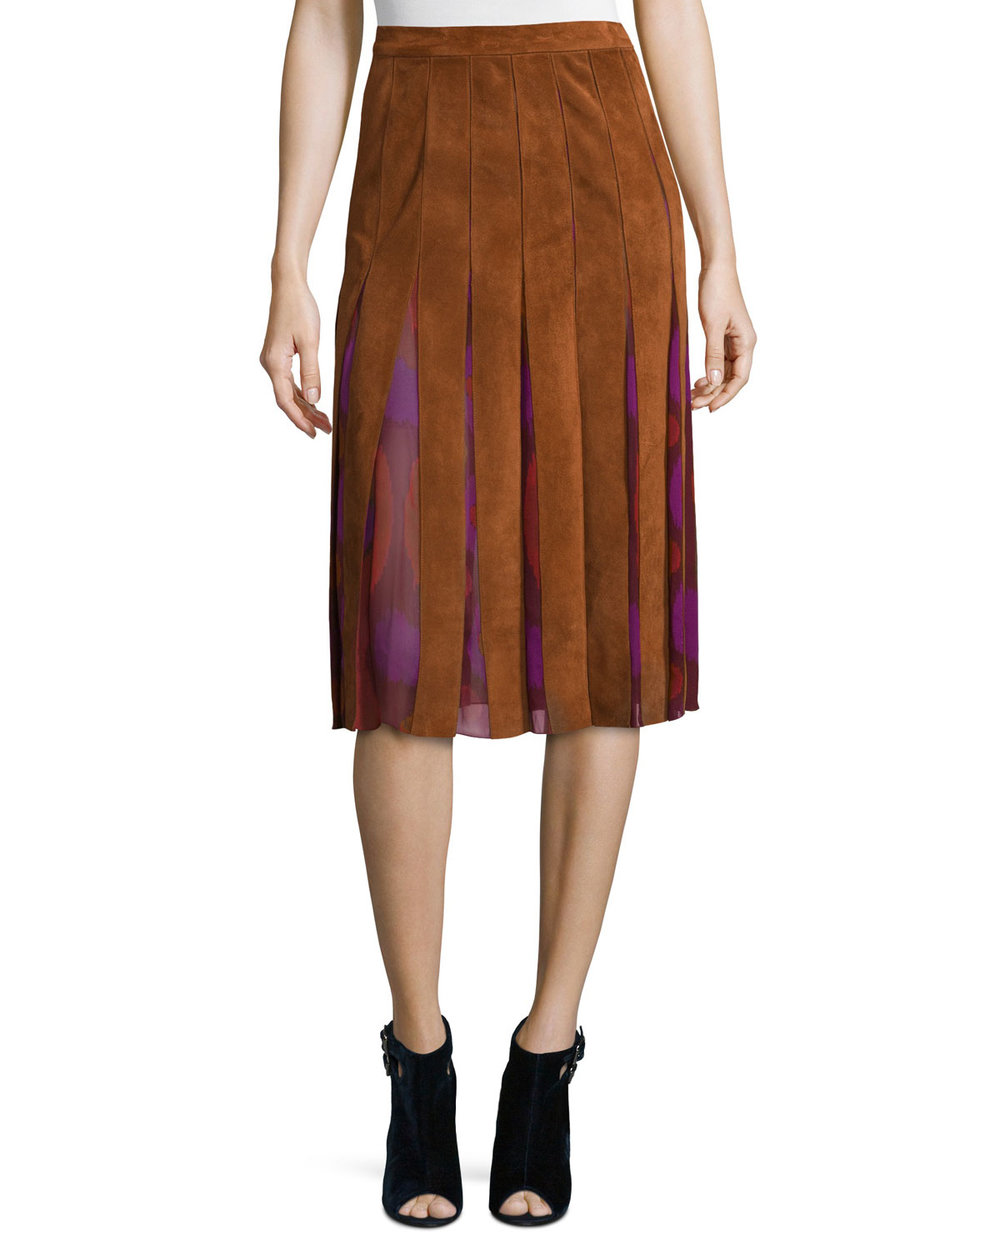 Diane von Furstenberg Melita Suede & Silk A-Line Midi Skirt. Last Call Neiman Marcus. Was: $798. Now: $559 + additional 30% off: $363.